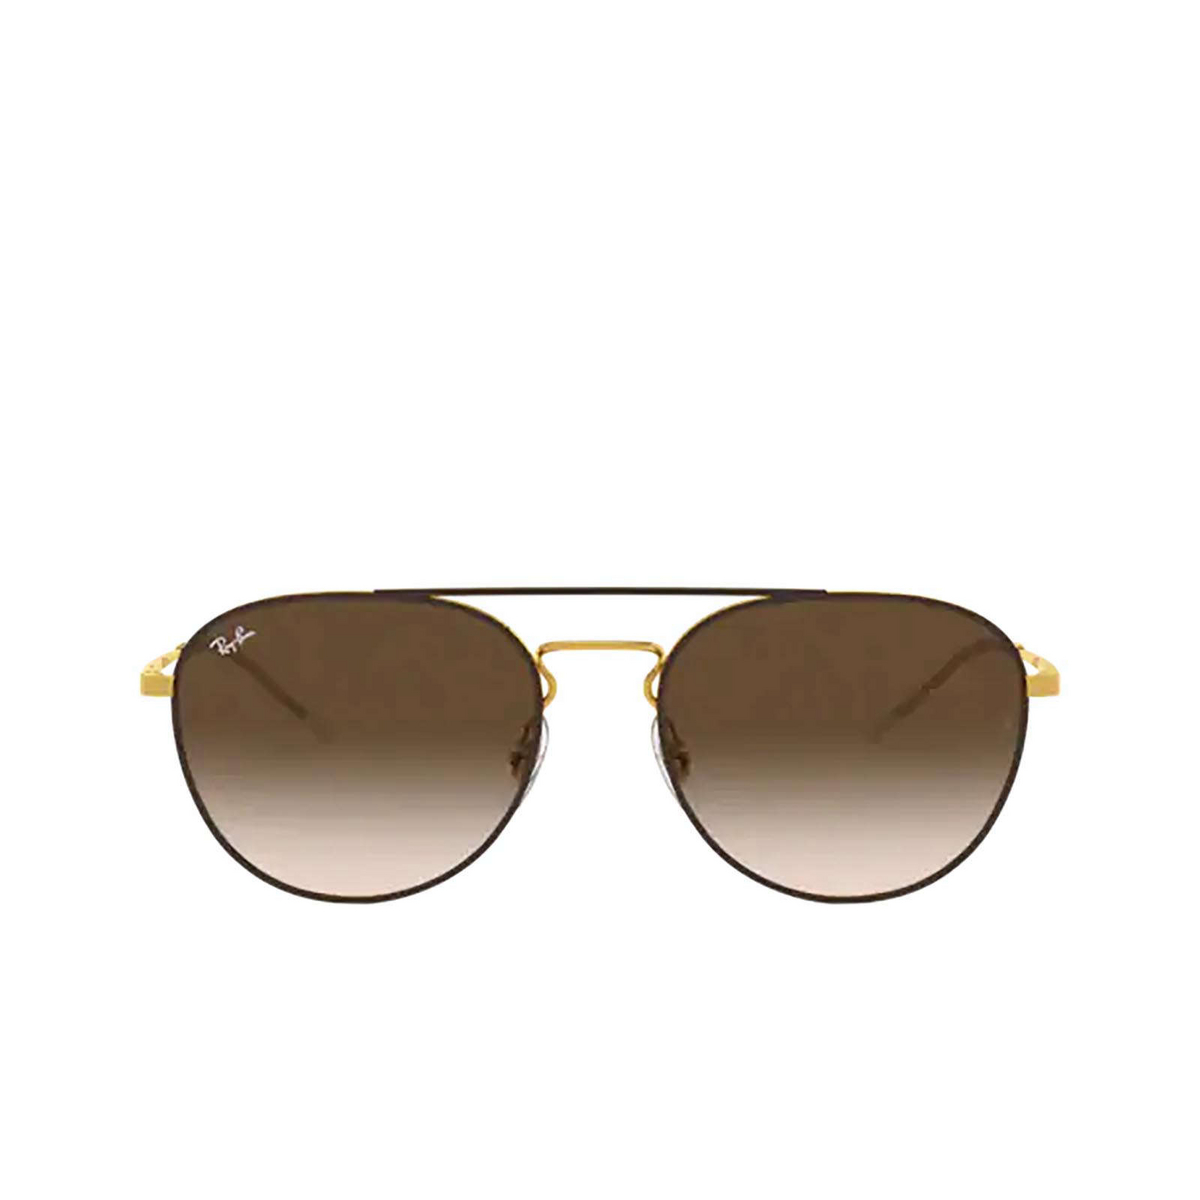 Ray-Ban® Round Sunglasses: RB3589 color Gold Top On Brown 905513 - 1/3.